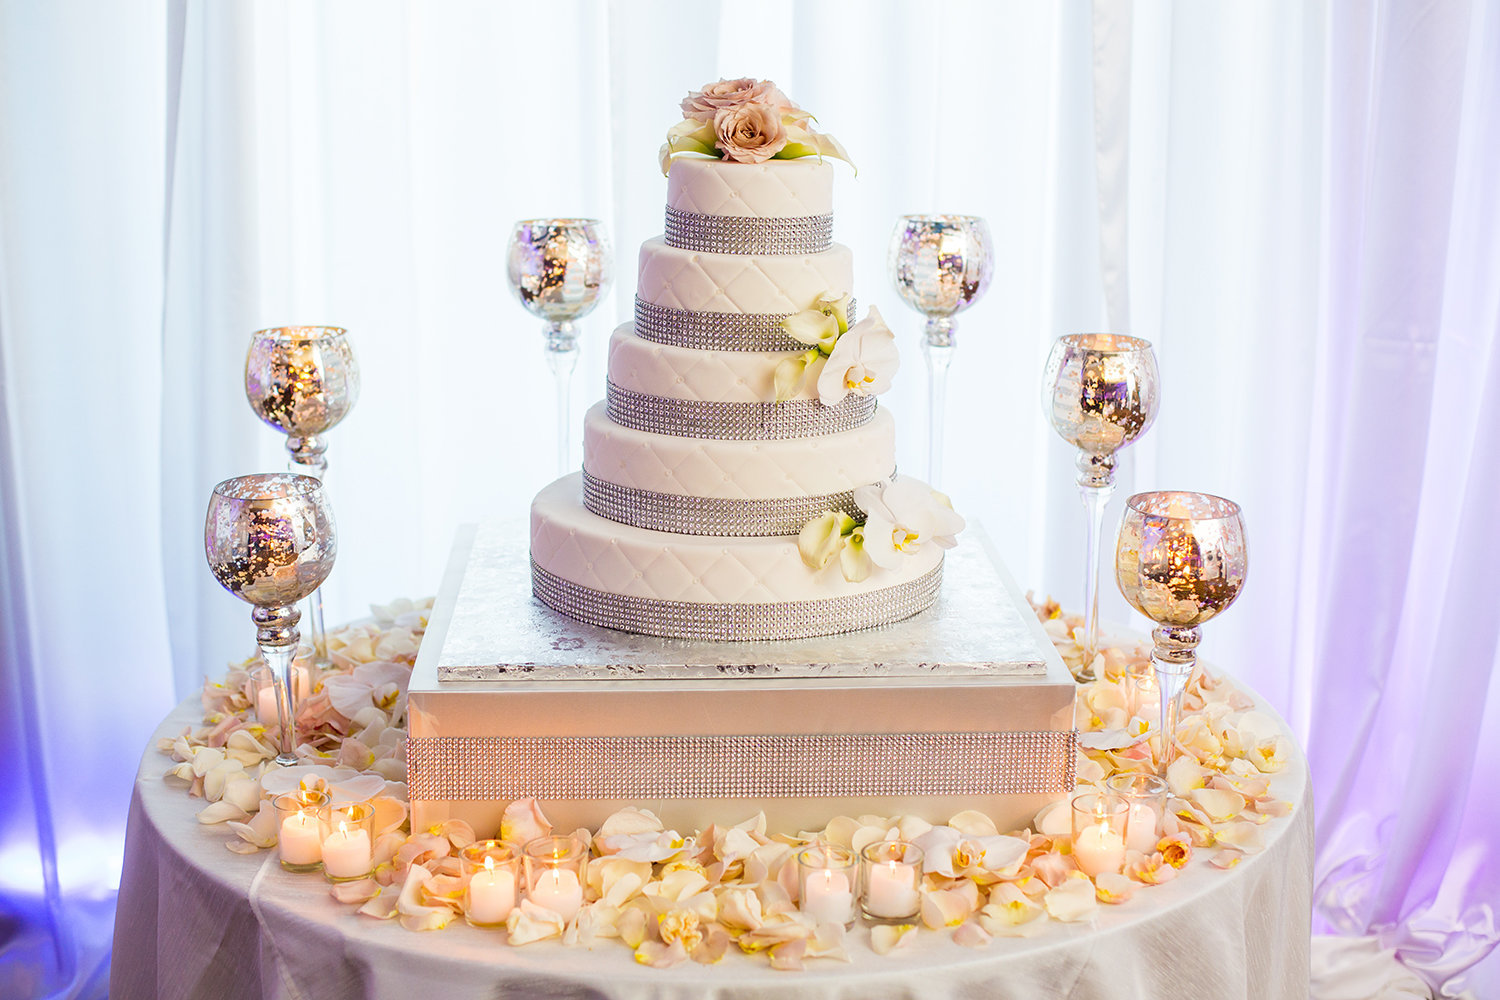 Wedding cake surrounded with candles and adorned with rose petals